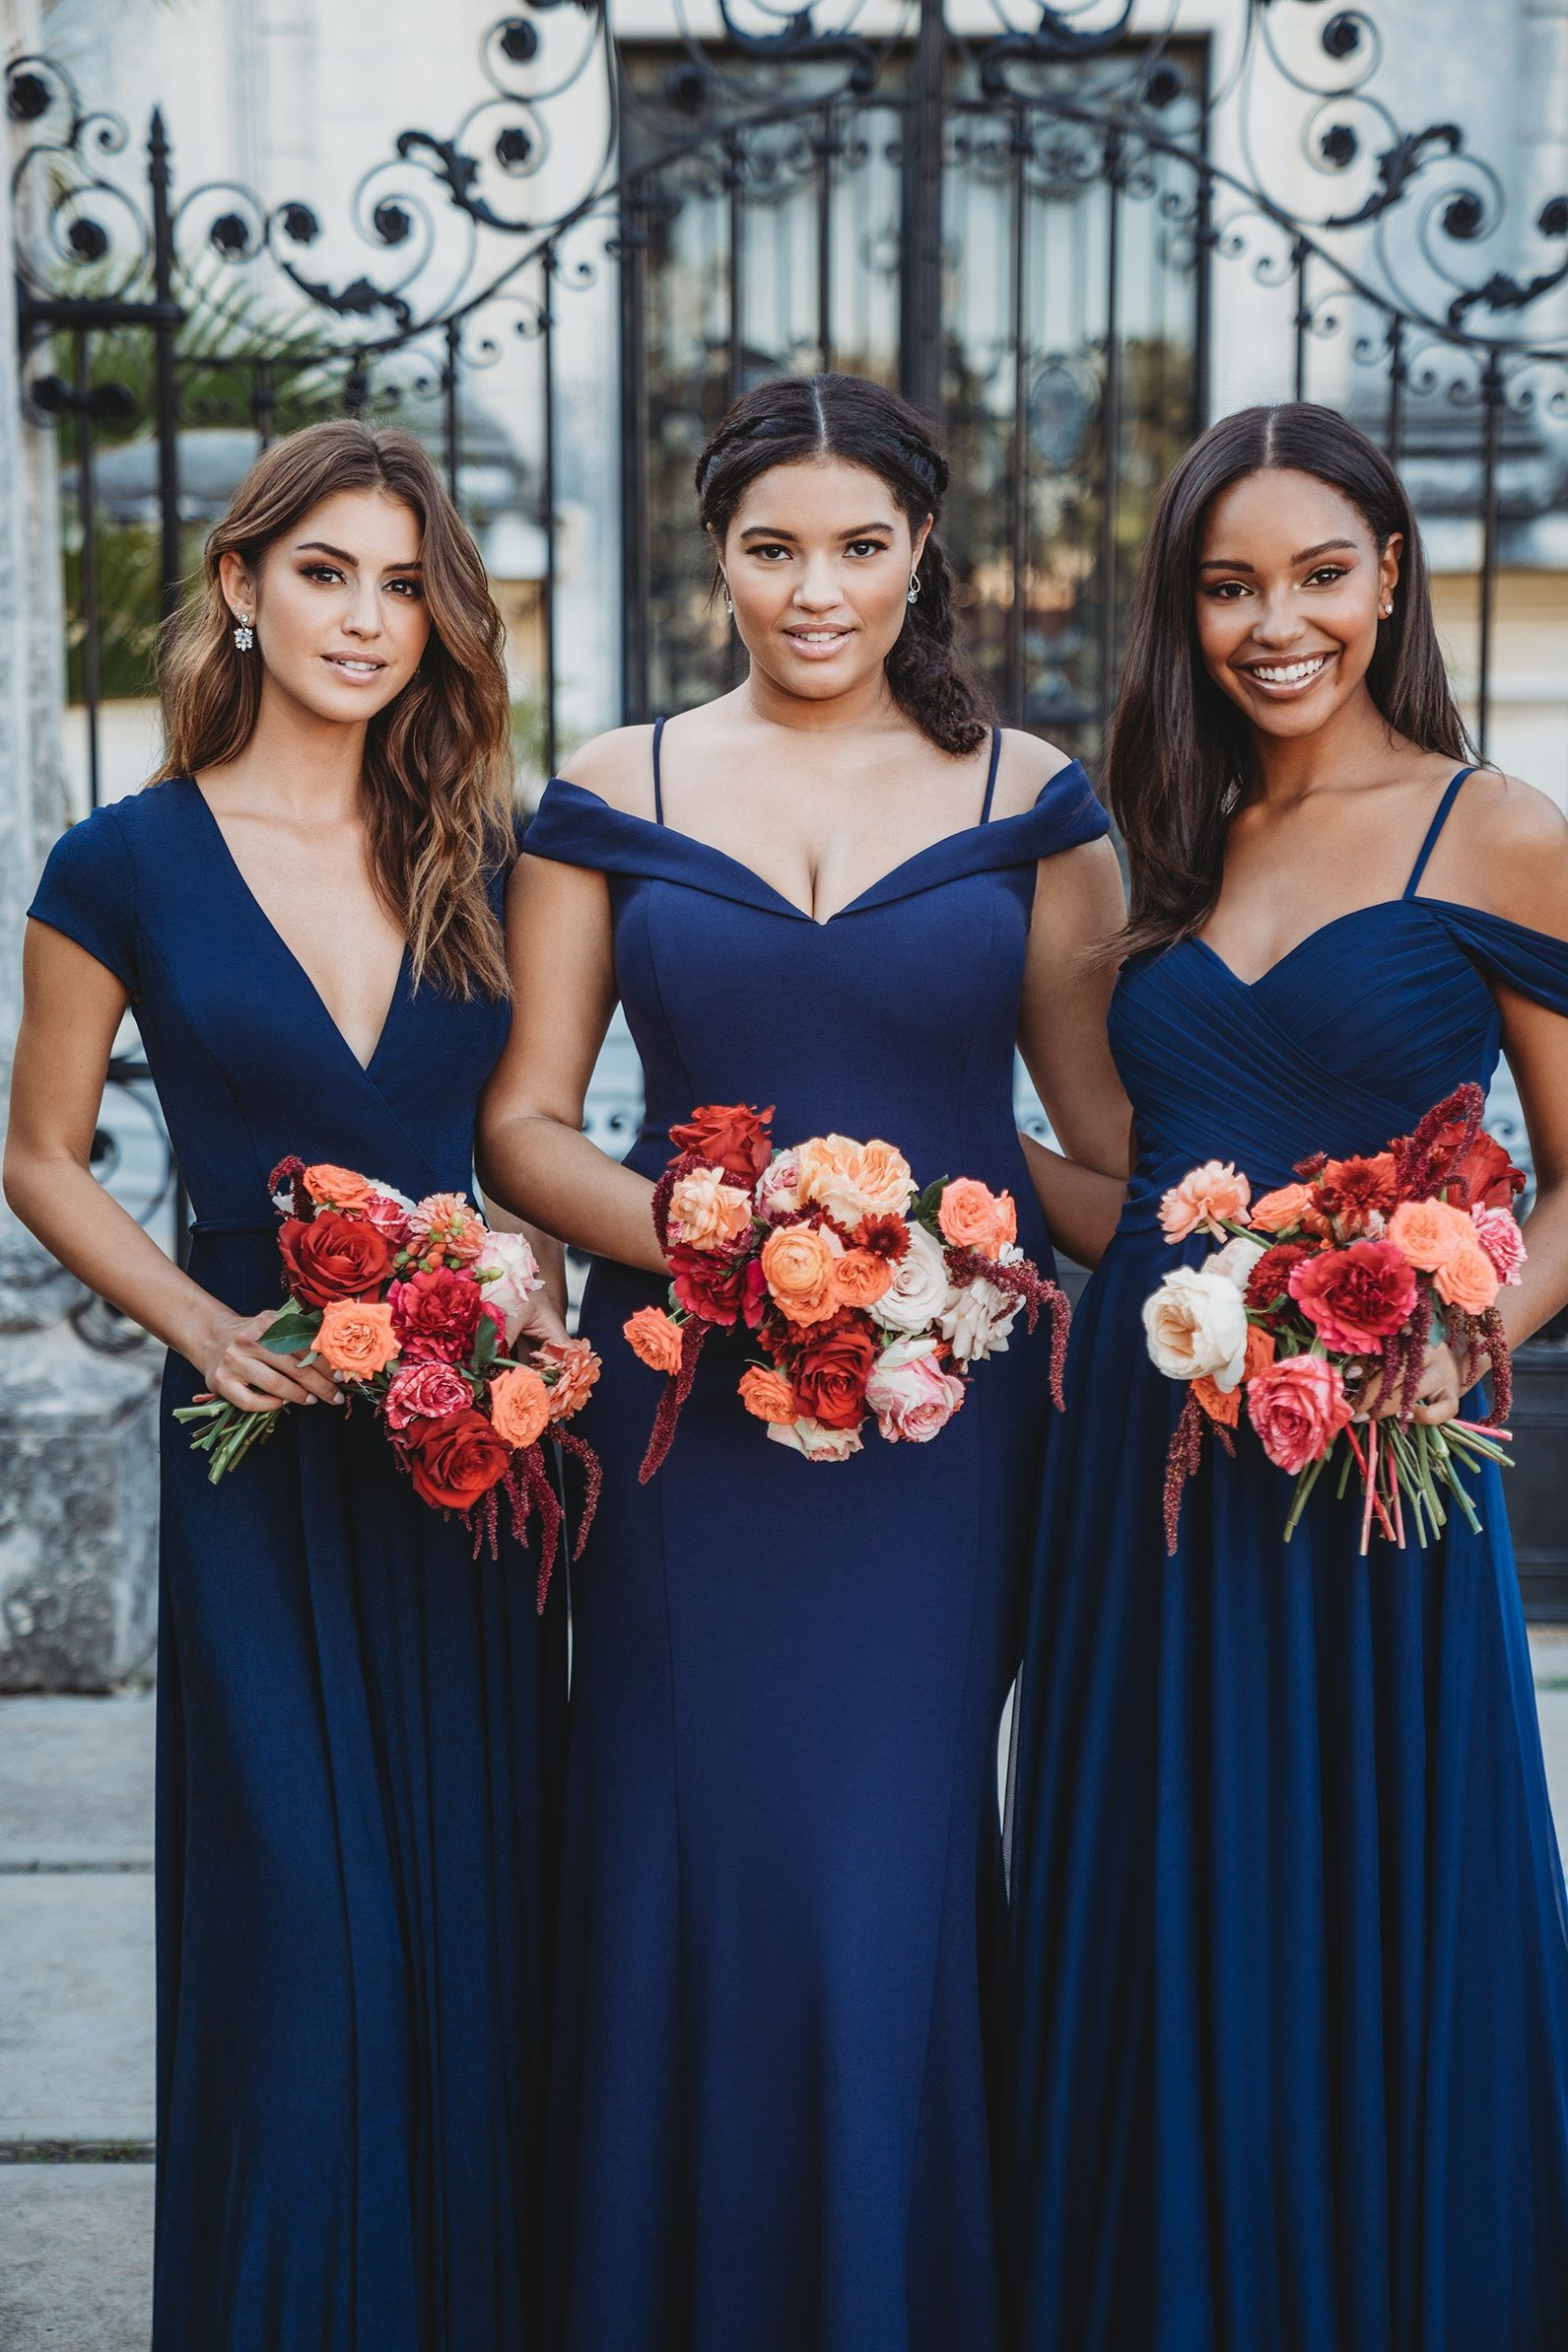 Bridesmaid